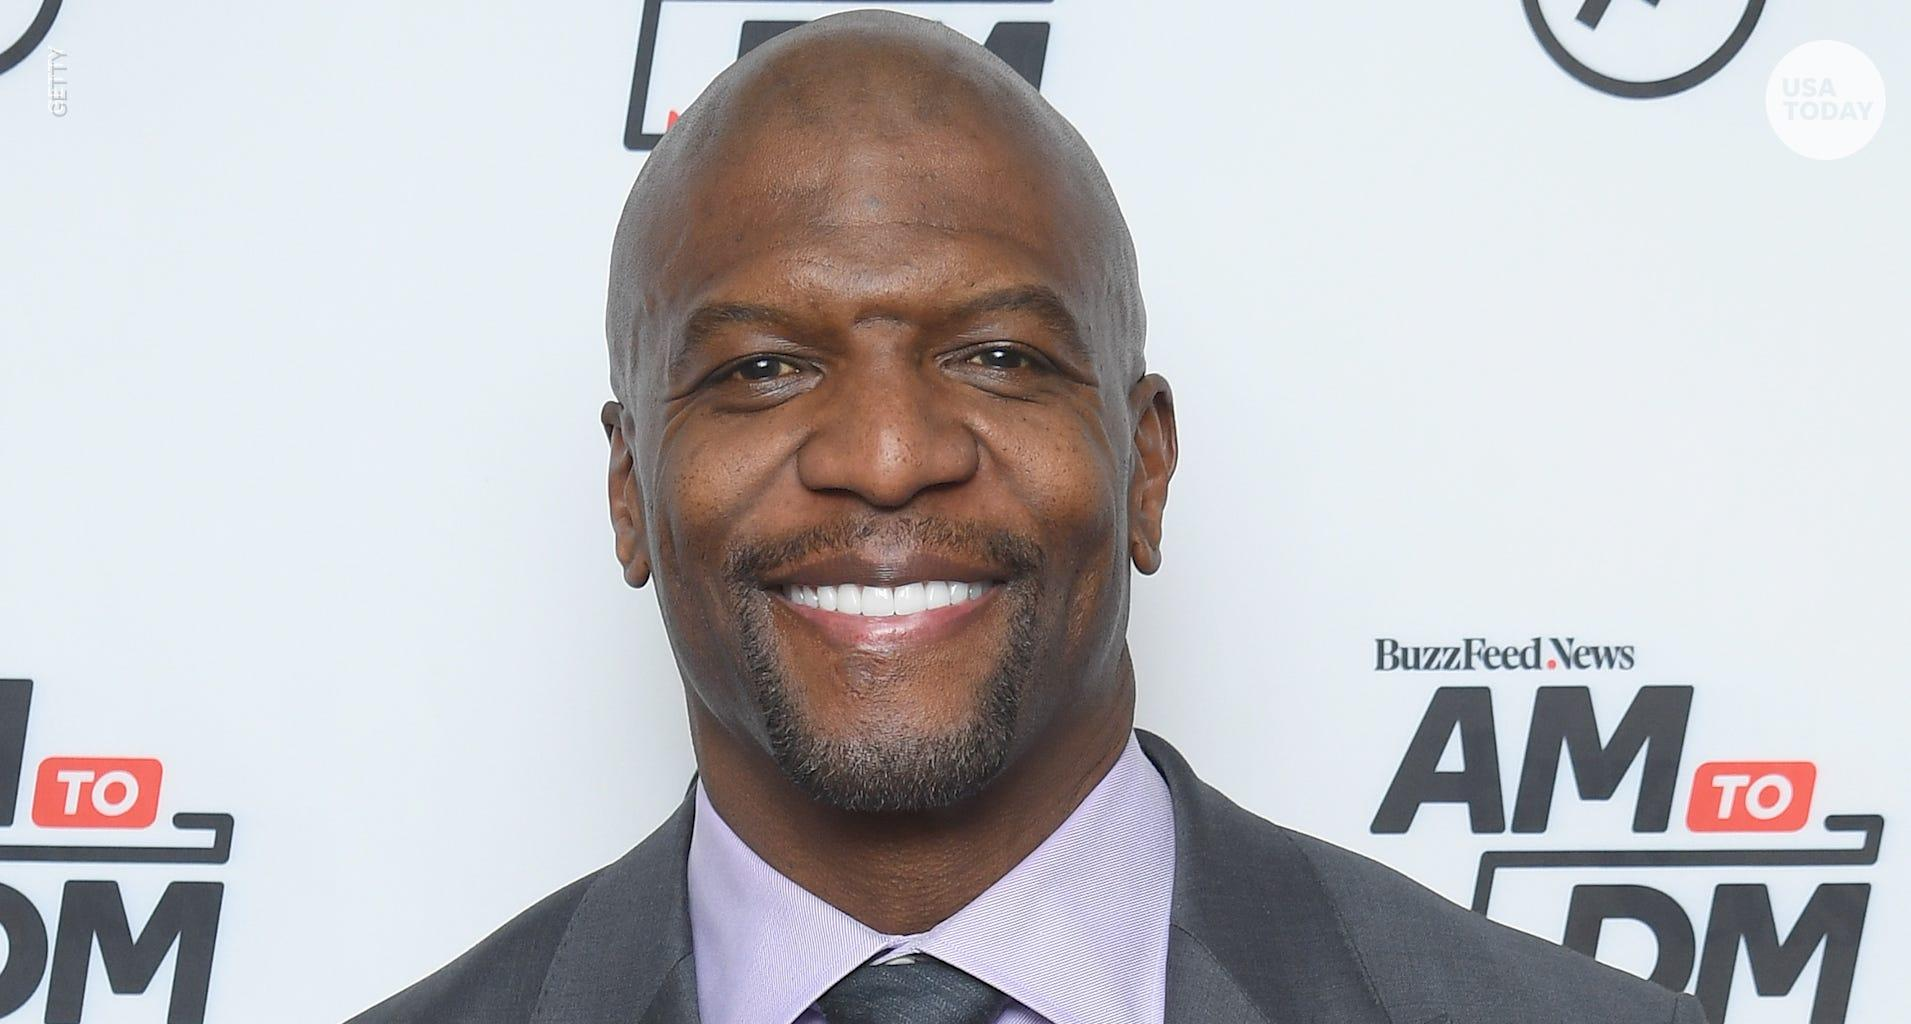 Terry Crews Doubles Down On His 'Black Supremacy' Tweets -- Fans Express Disappointment